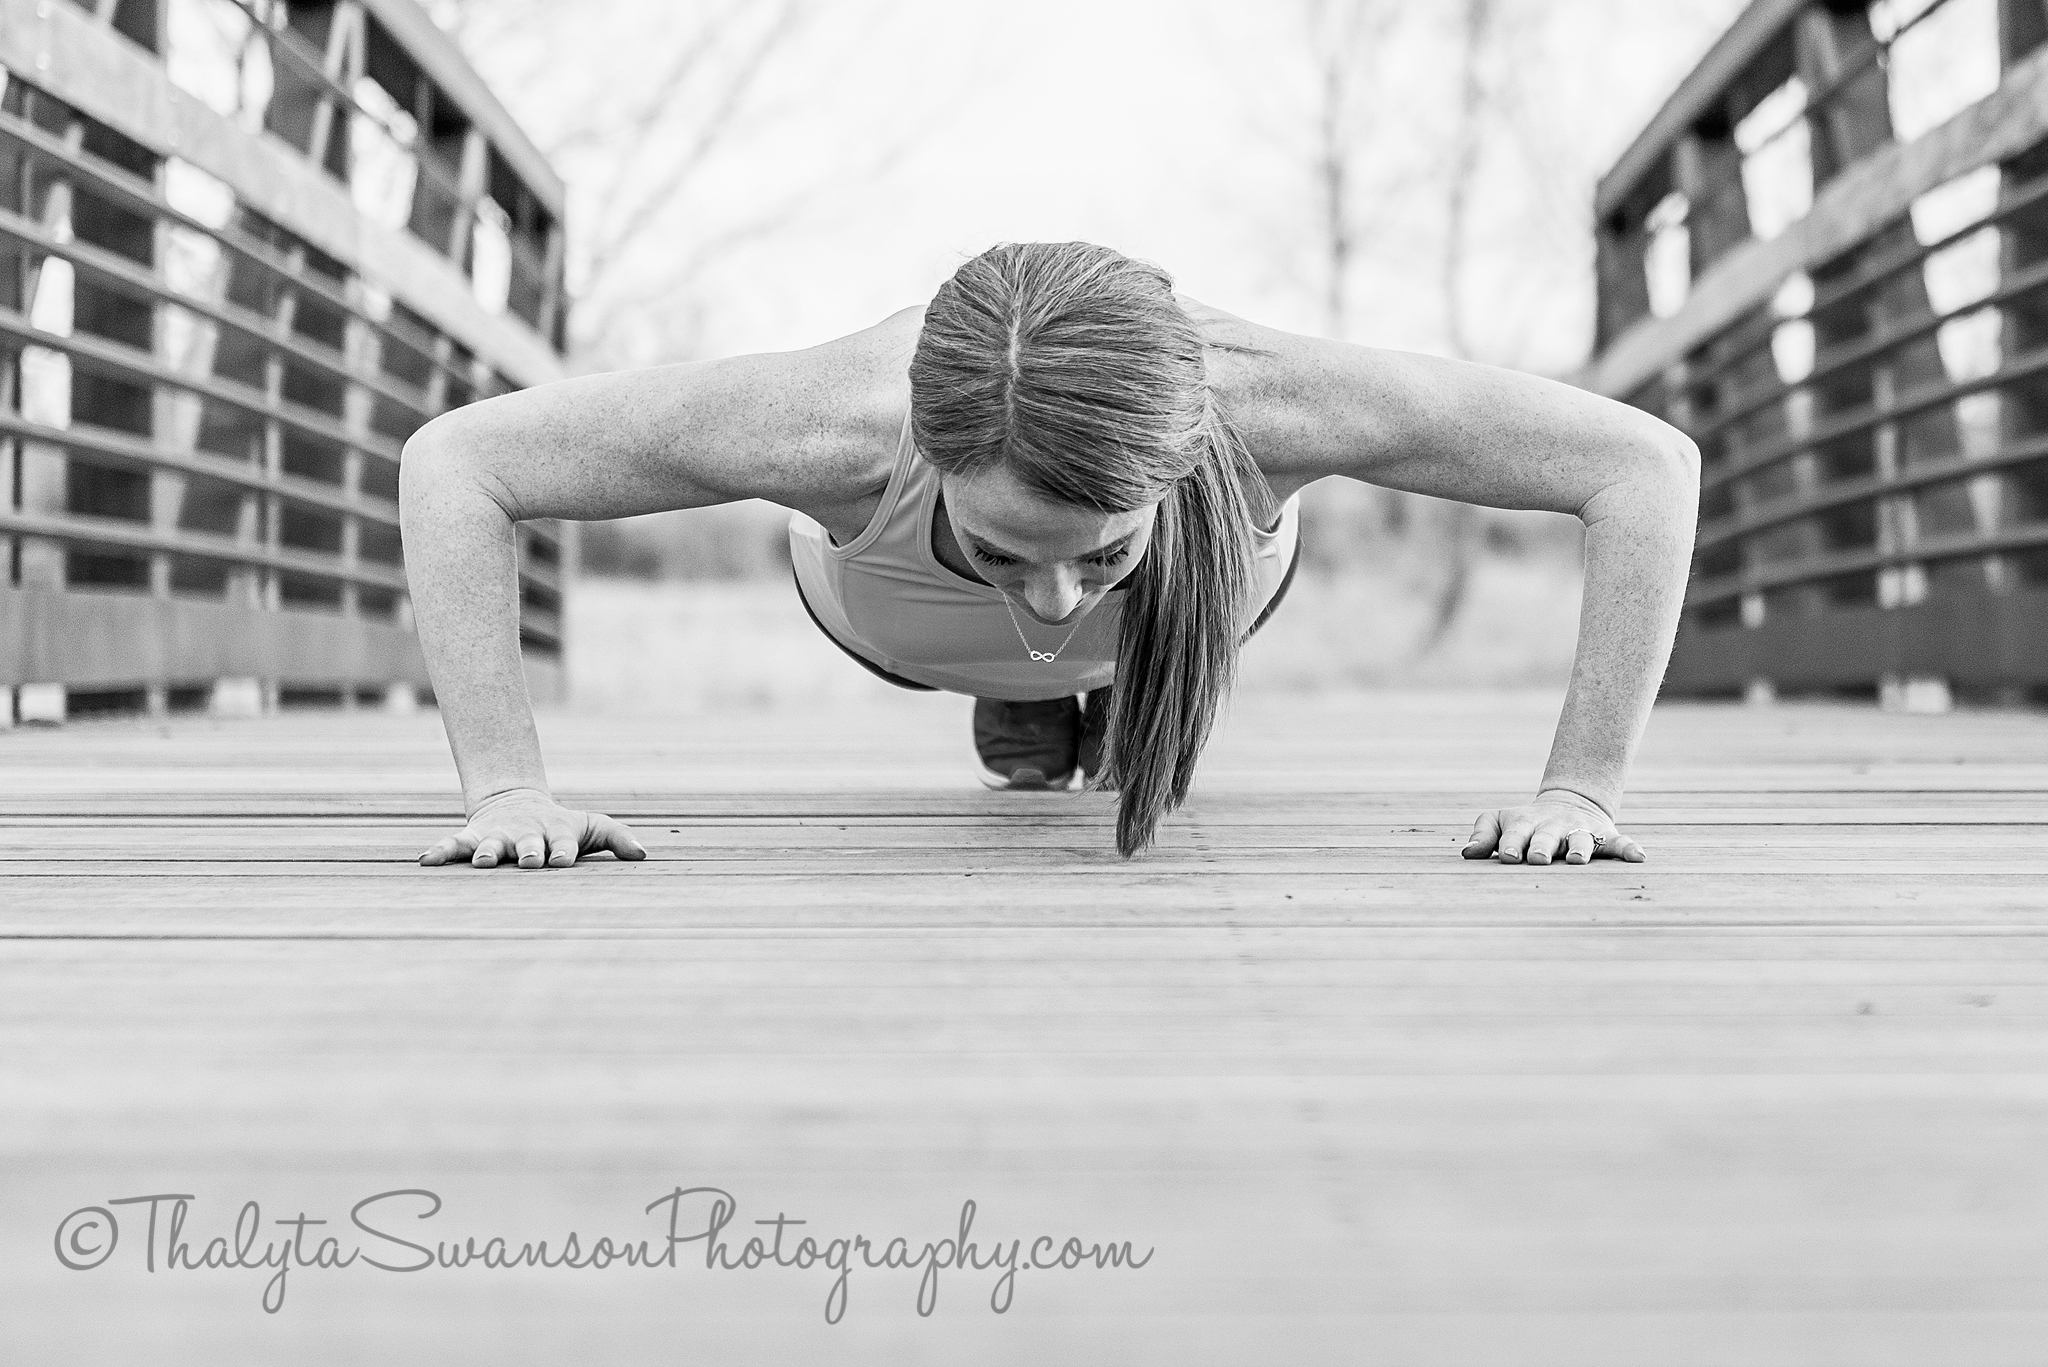 Thalyta Swanson Photography - Fitness Photos (8)